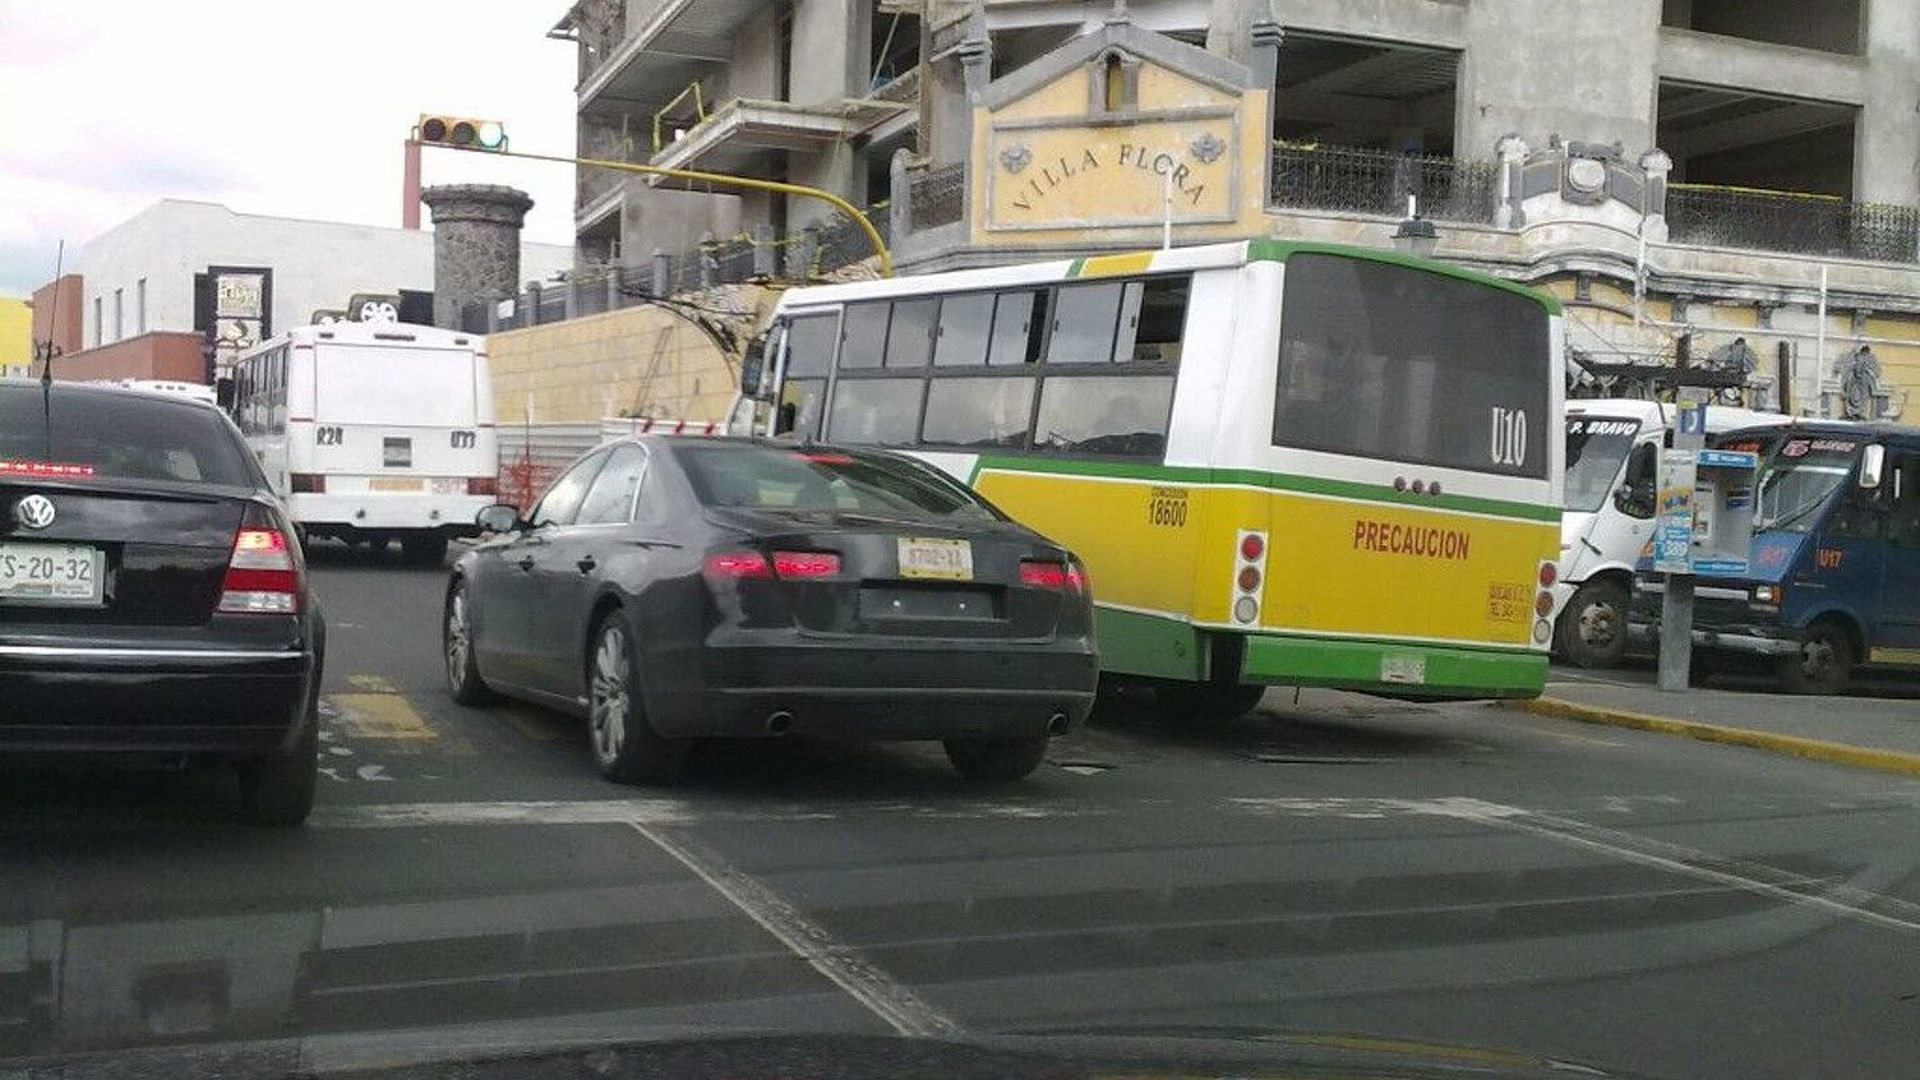 Possible Audi A8 Test Mule Caught on Video in Mexico